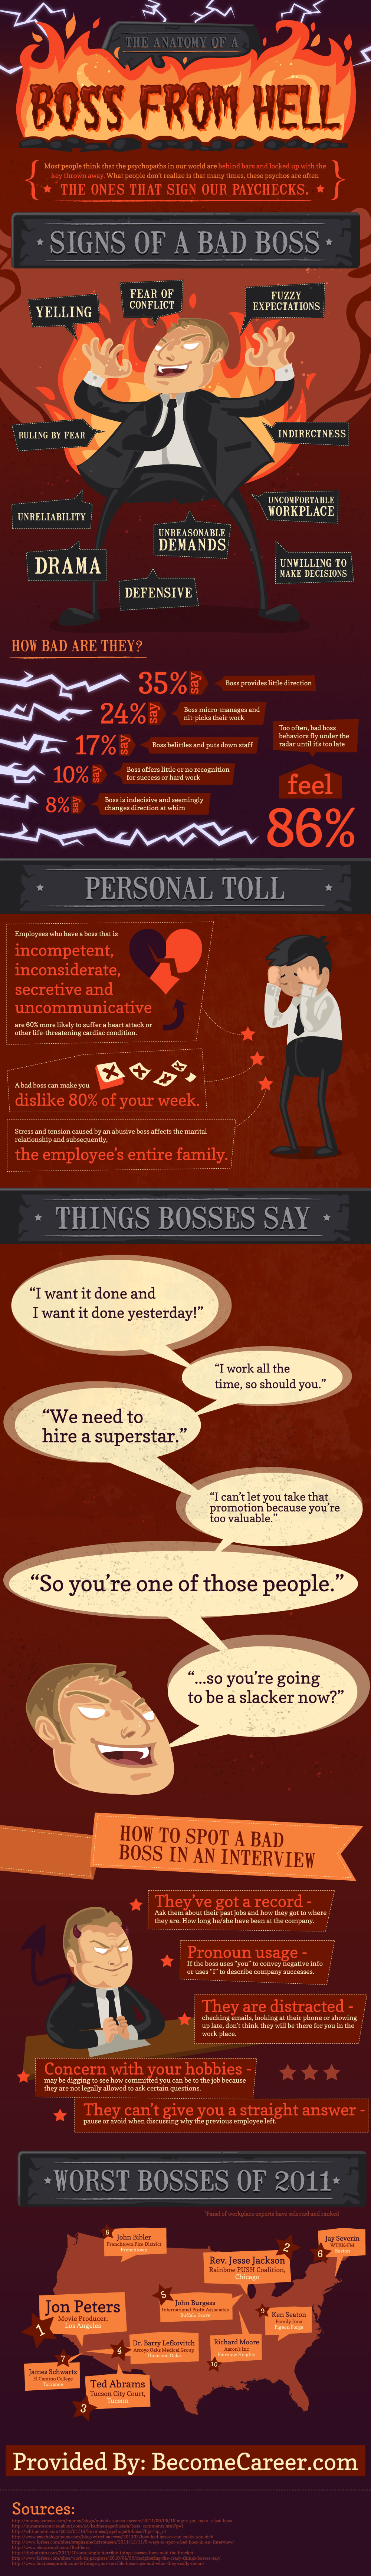 The Anatomy of a Boss from Hell